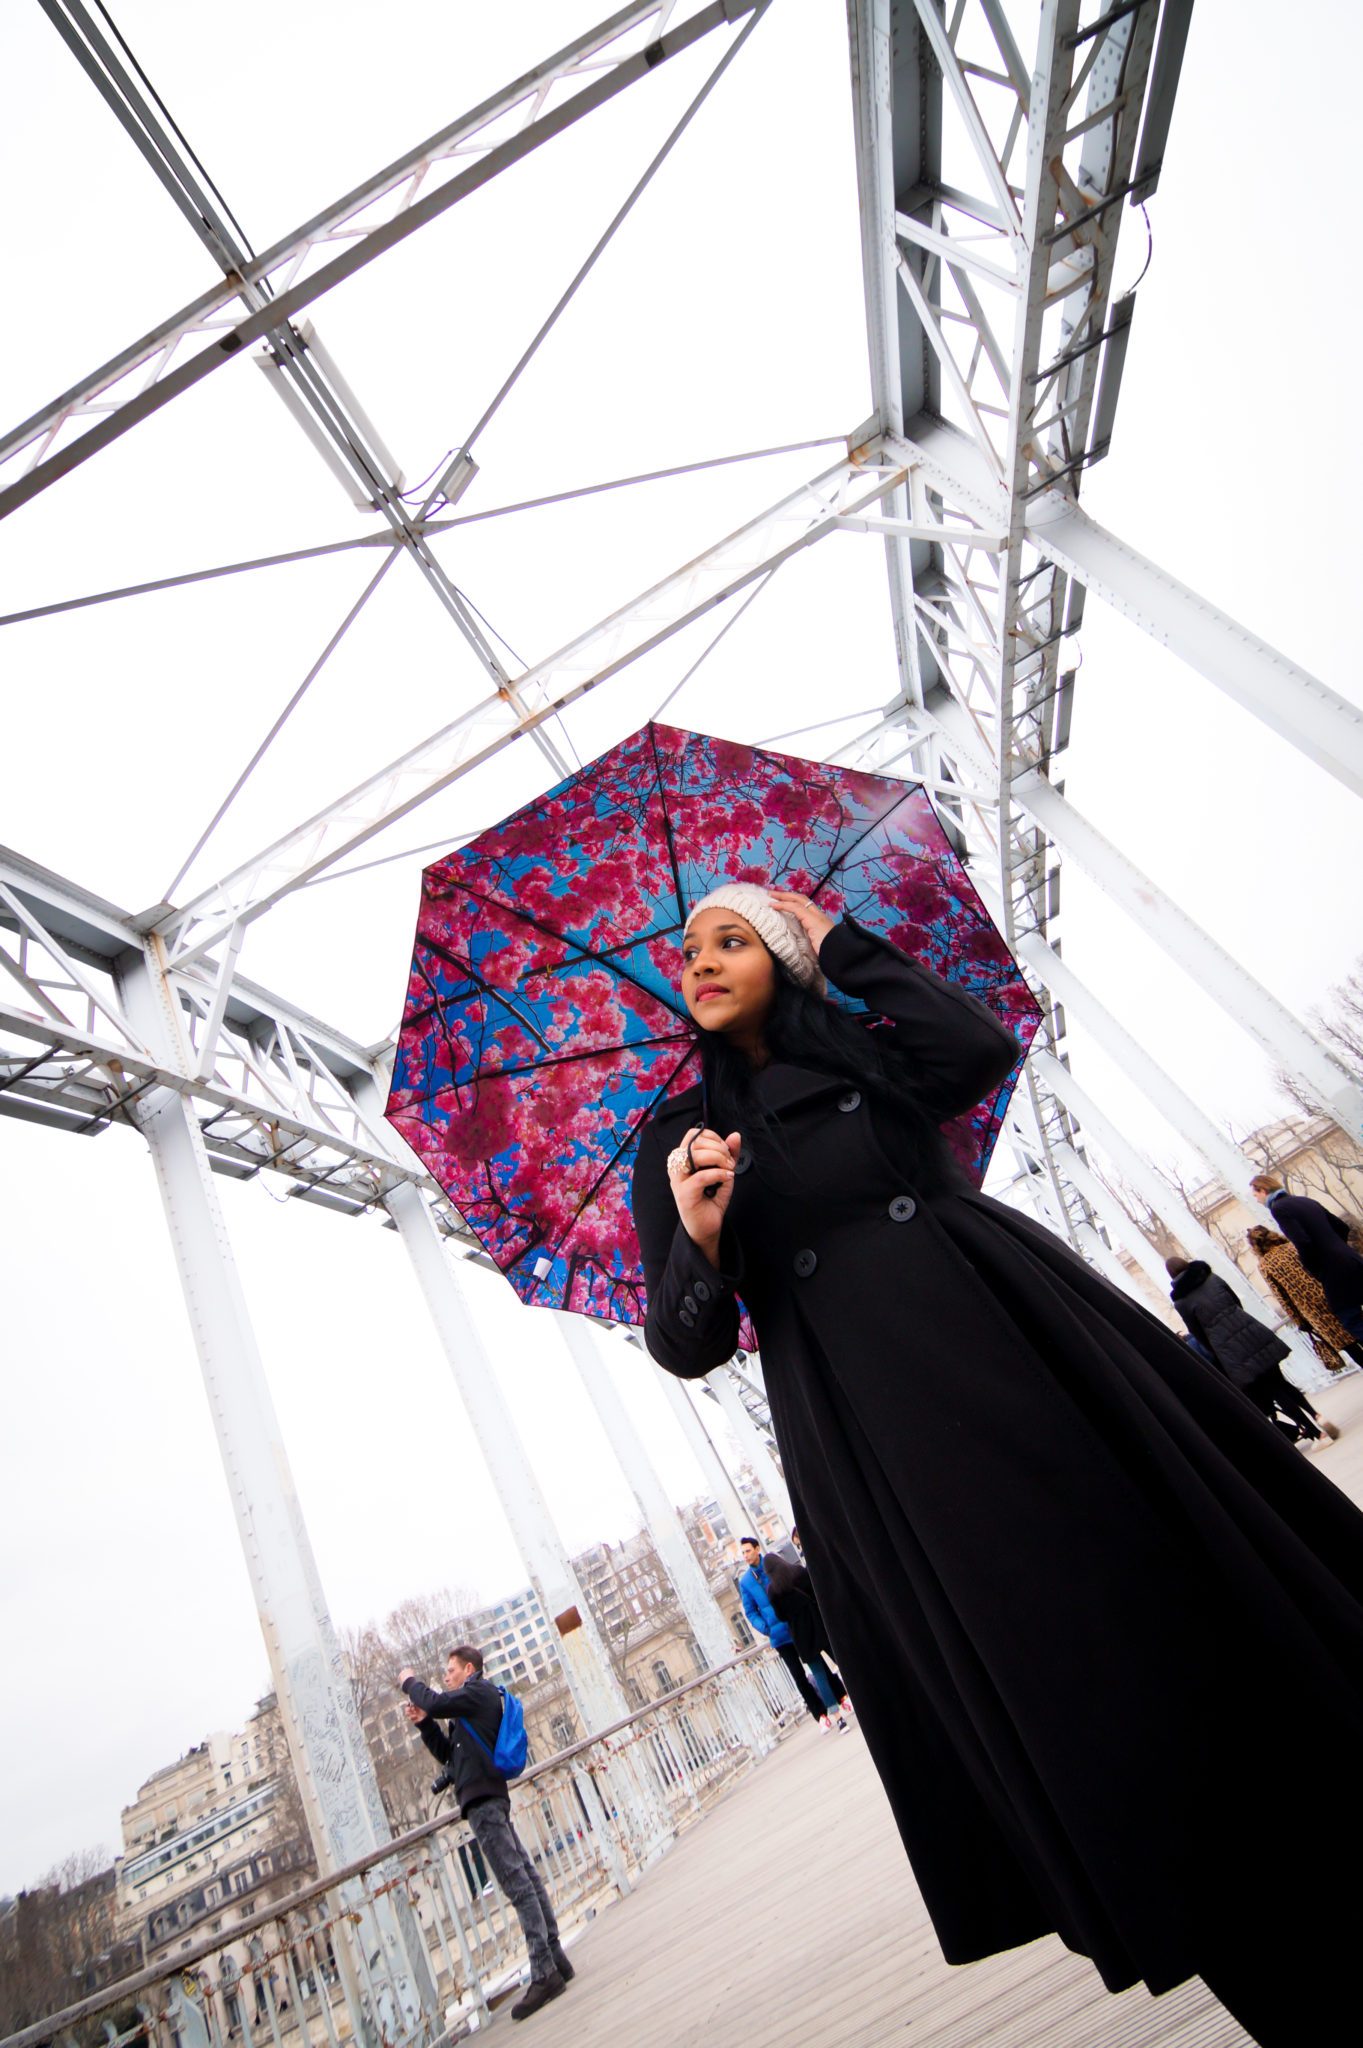 Hemaposesesvalises_Happysweeds_Cherry_Umbrella_manteau_max&co_debilly_paris_blog_mode